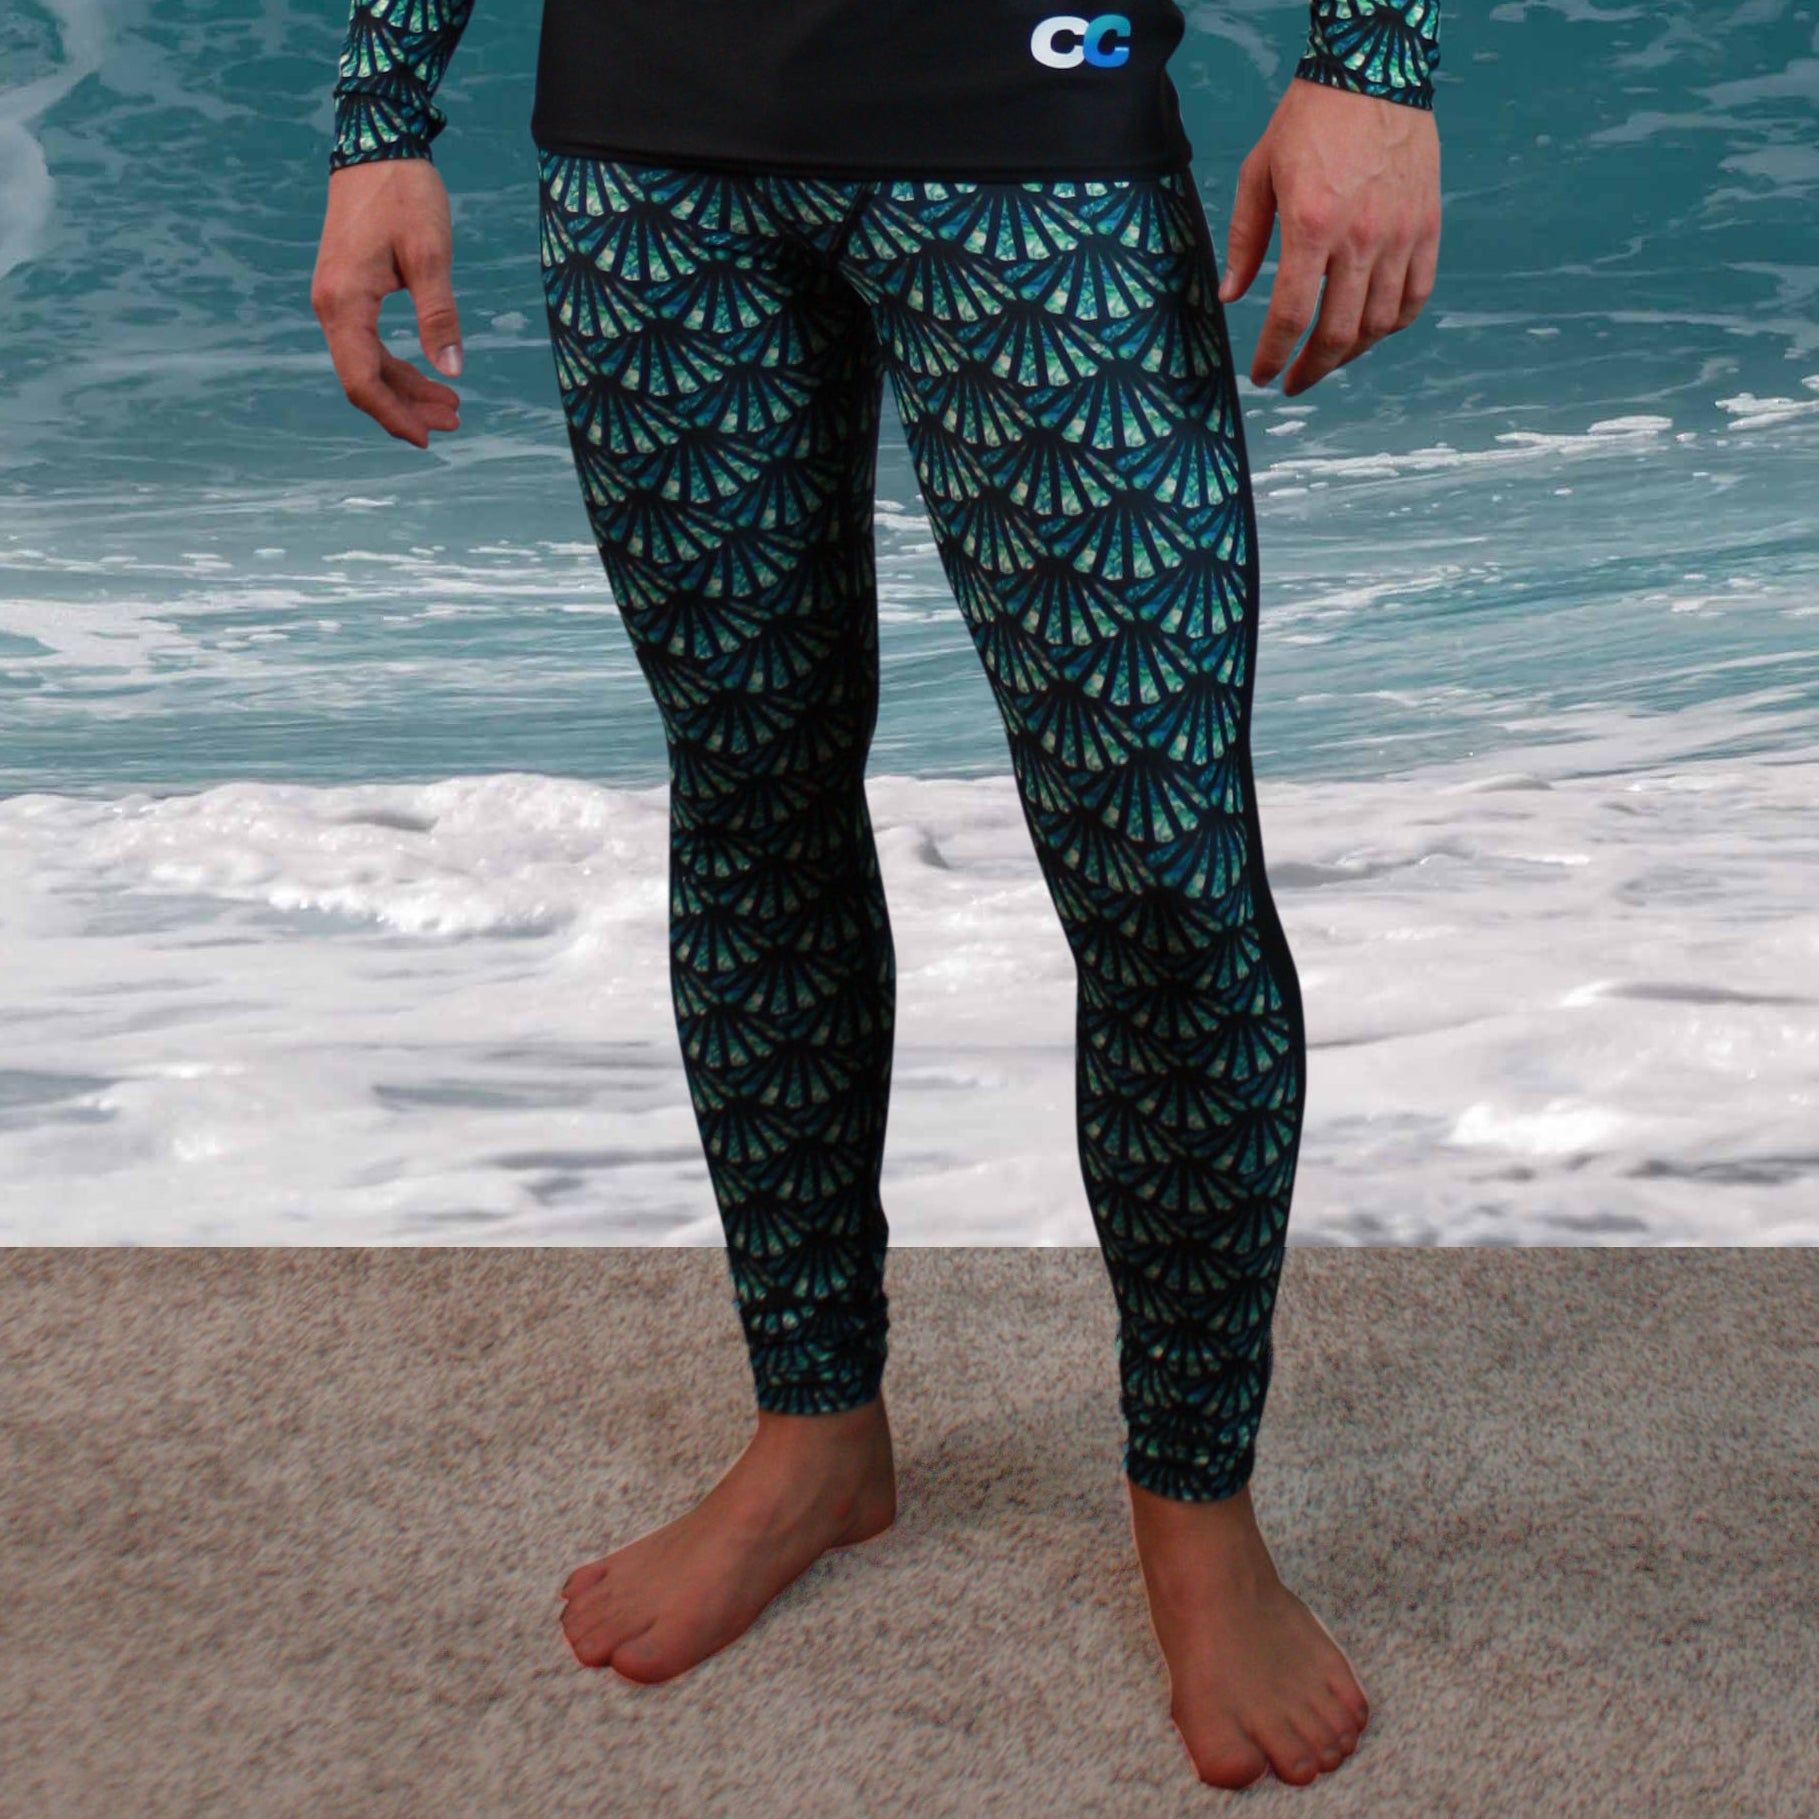 Signature CC Scale Pattern Men's Compression Pant - Cape Cali